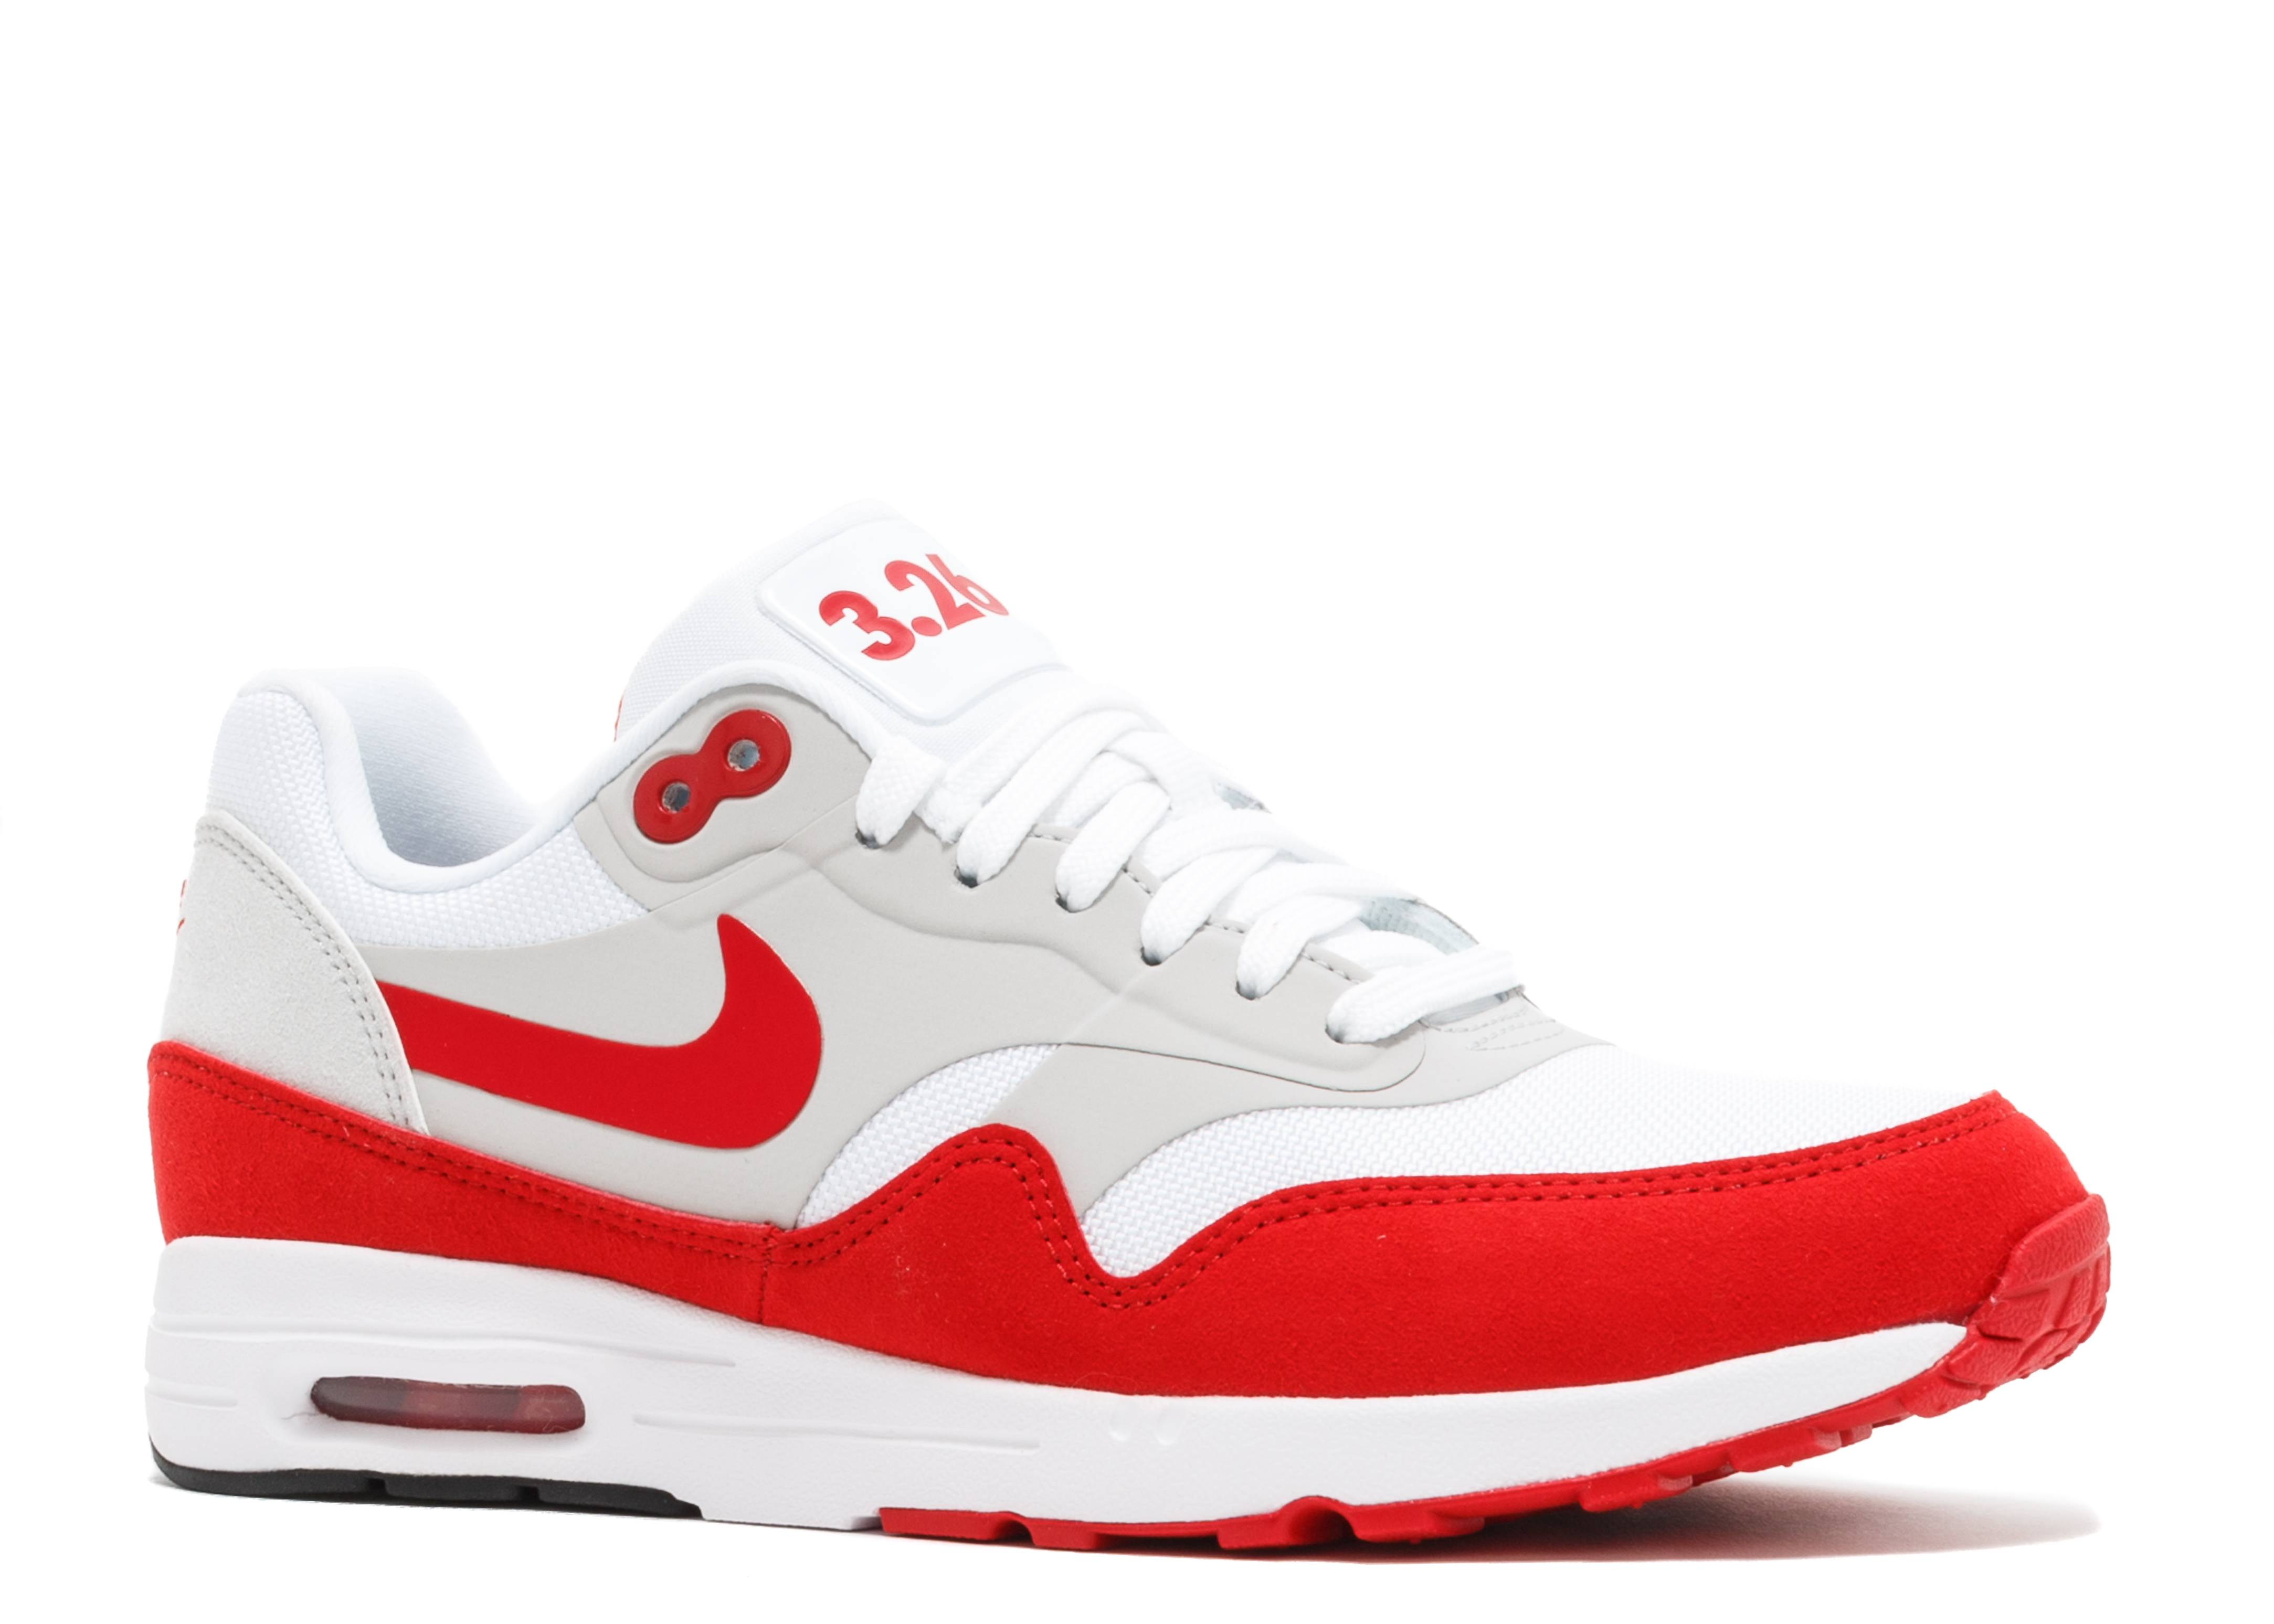 cheap for sale good out x factory outlets w nike air max 1 ultra 2.0 le